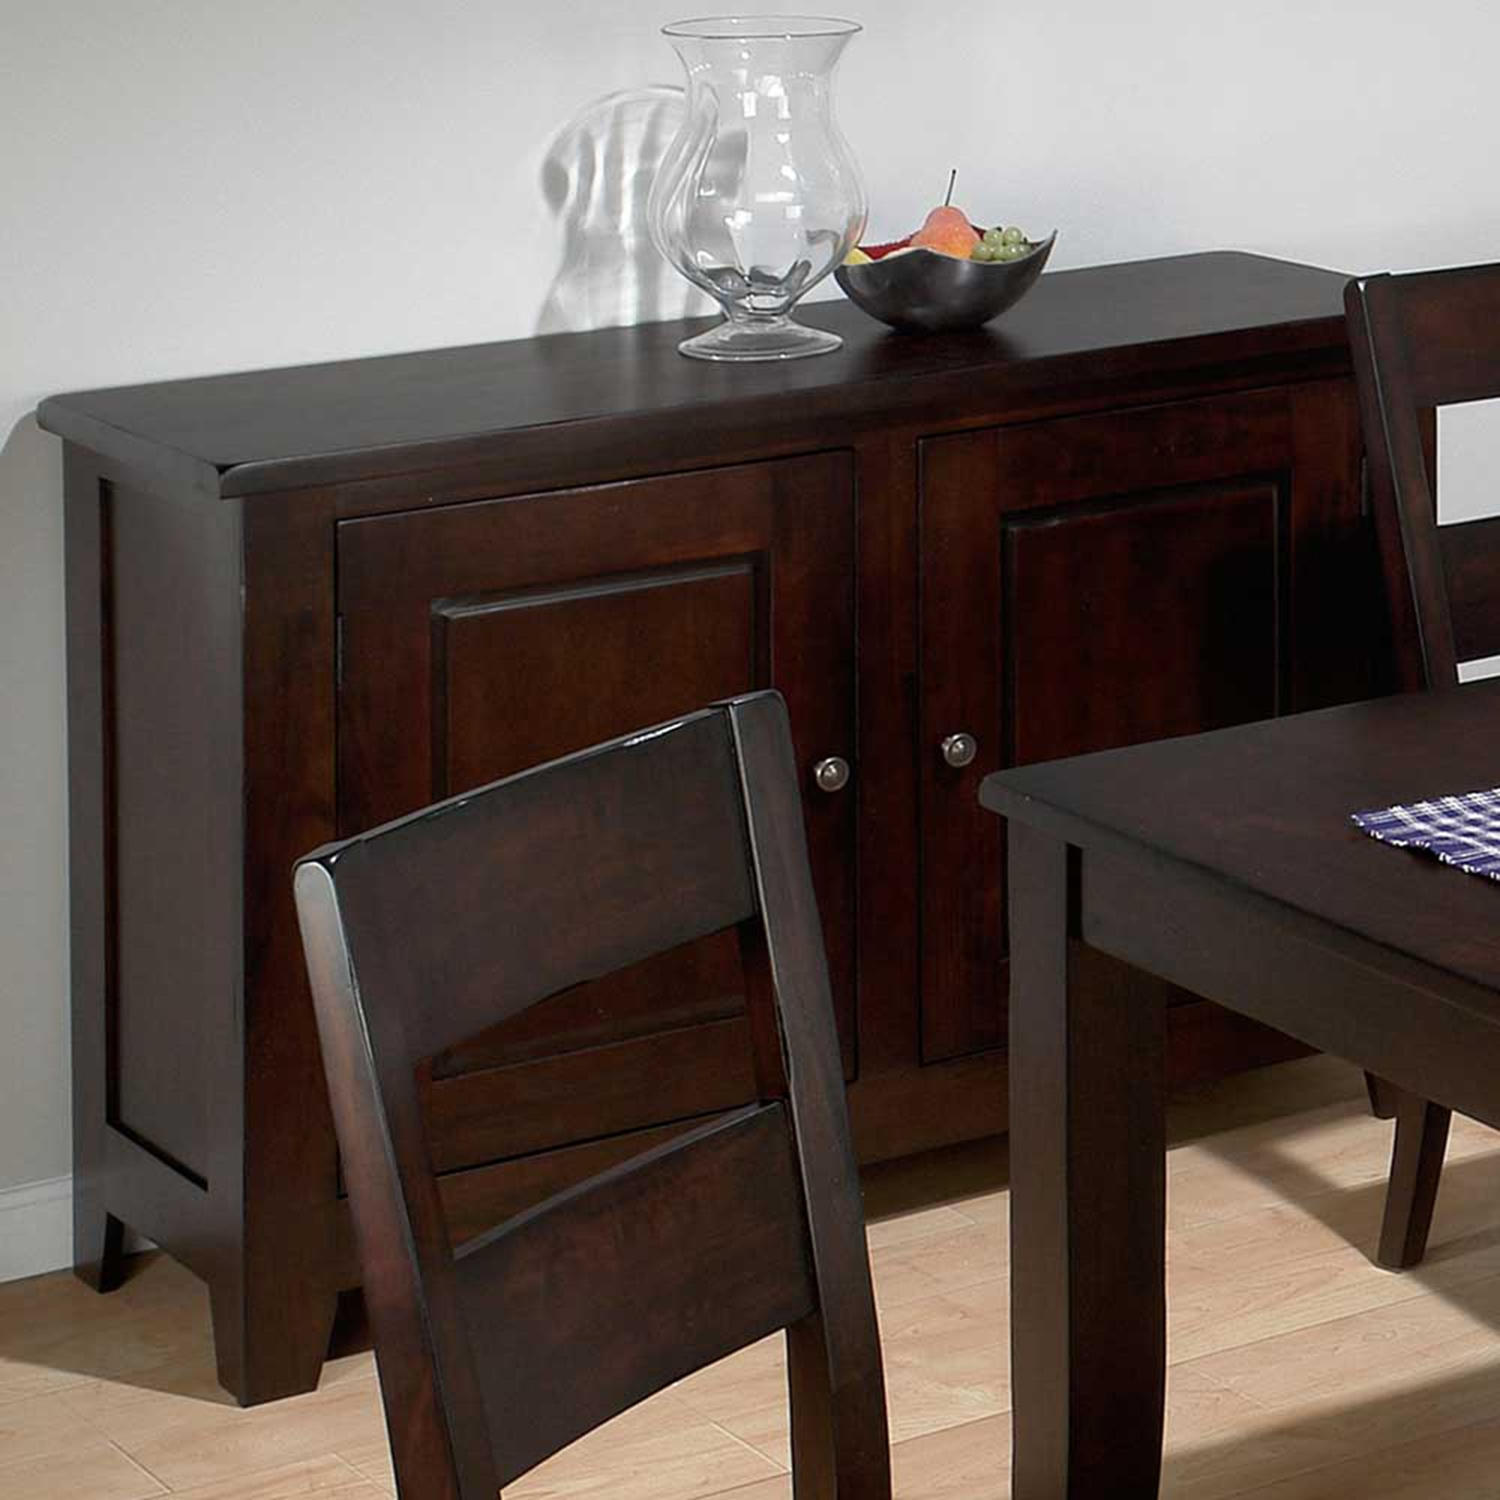 Dark Rustic Prairie Server - 2 Doors, Removable Wine Rack - JOFR-972-99